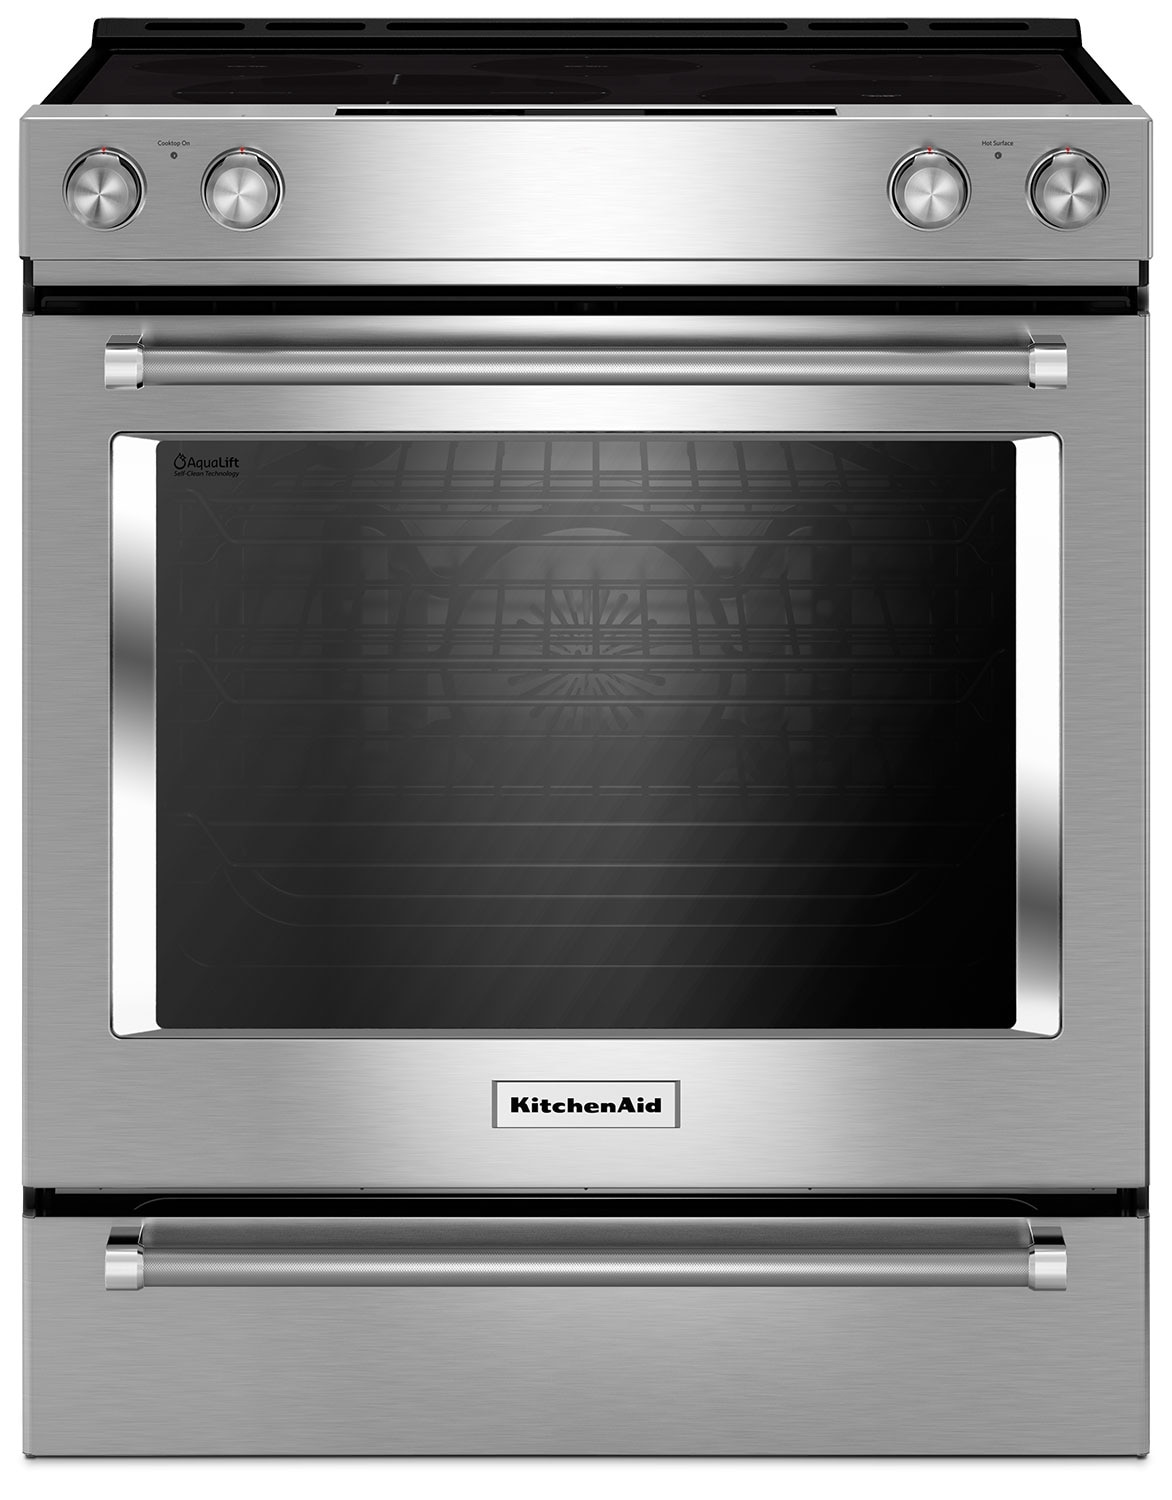 Cooking Products - KitchenAid 7.1 Cu. Ft. Slide-In Convection Range with Baking Drawer - Stainless Steel